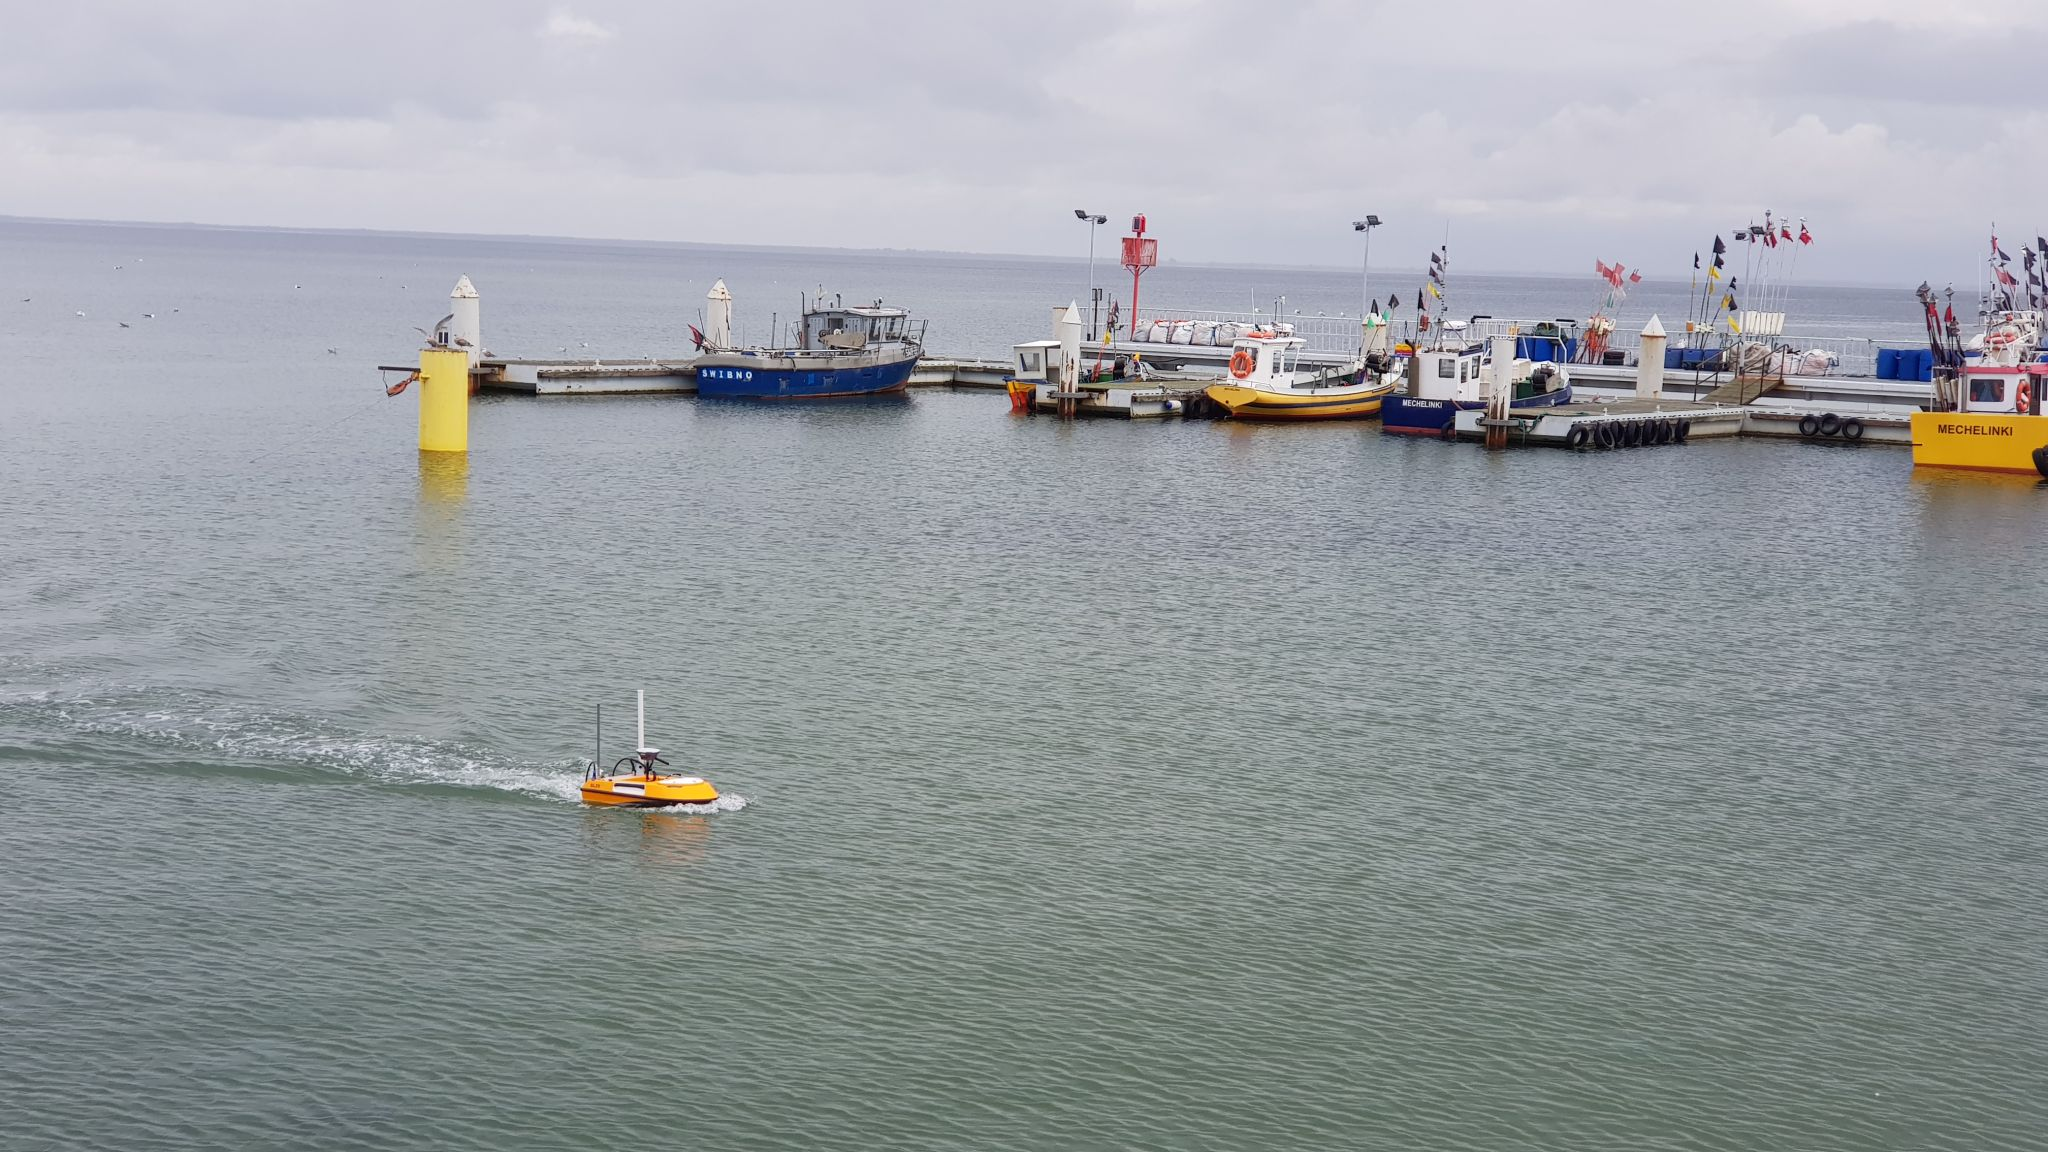 SL20 unmanned surface vehicle sailing near a dock